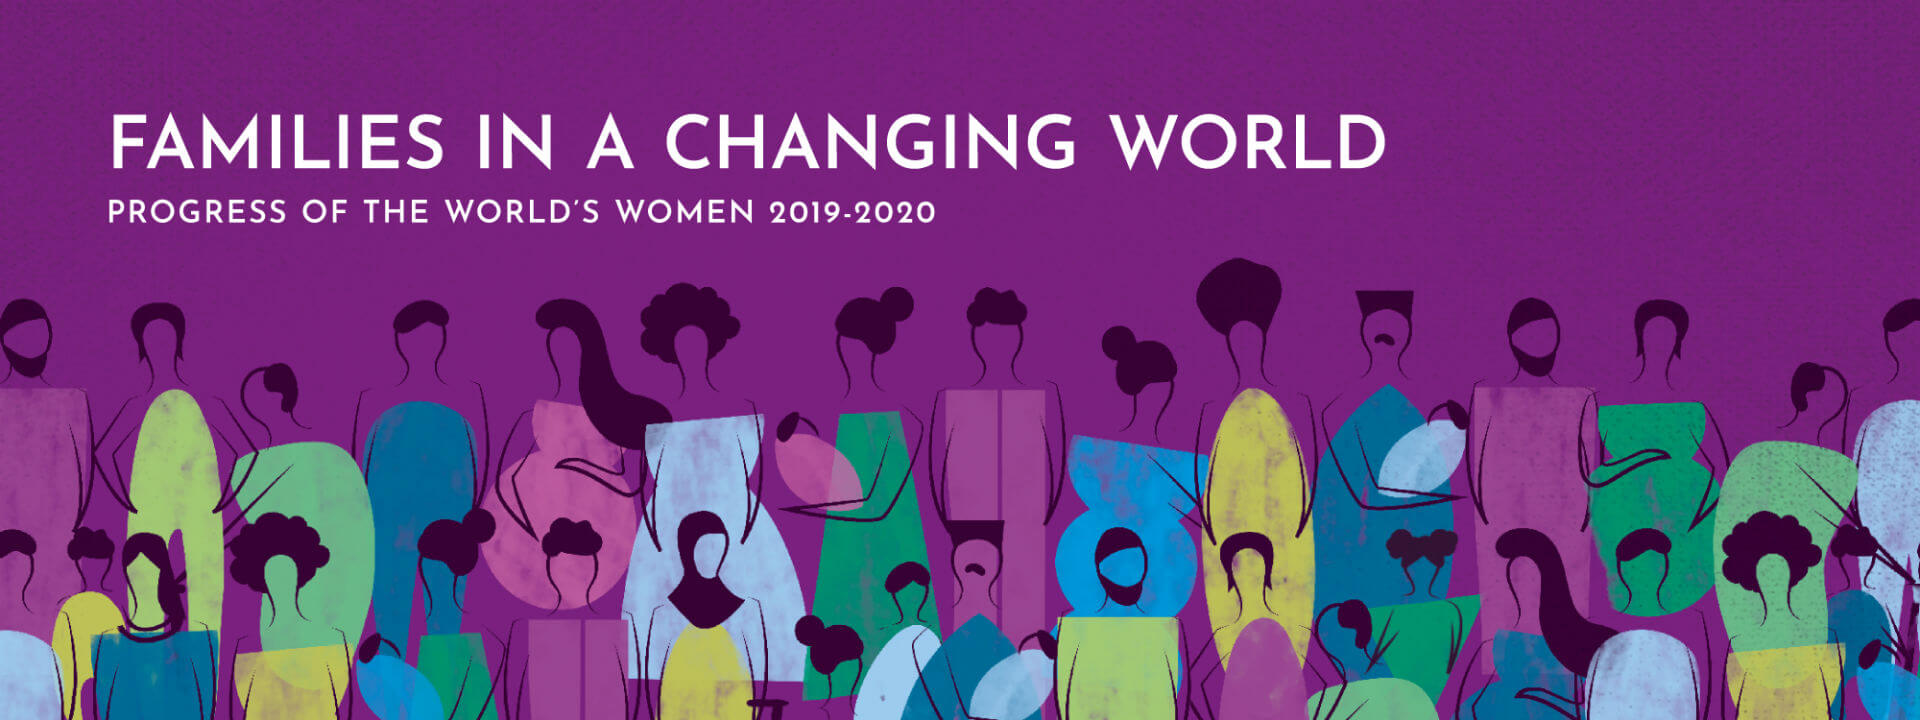 Progress of the World's Women 2019–2020: Families in a changing world